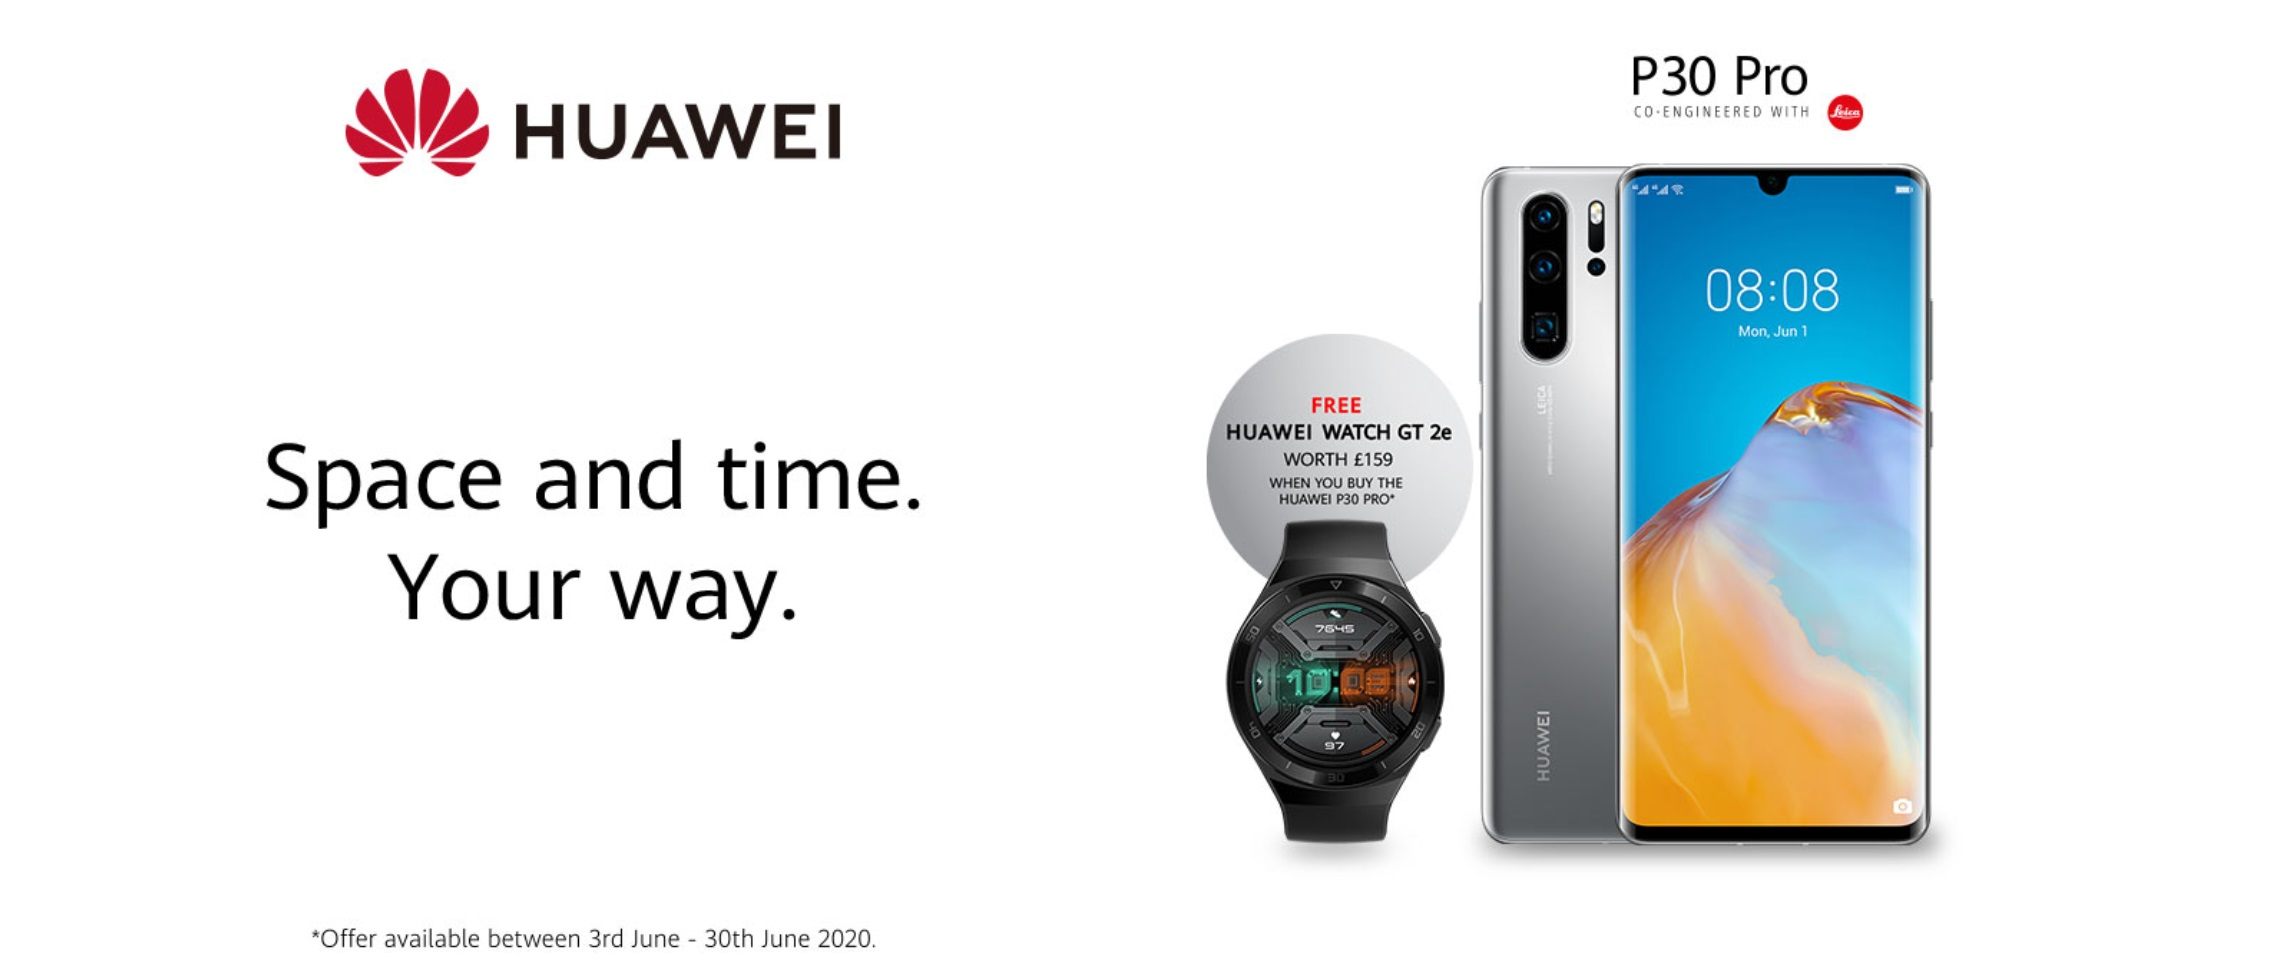 Huawei P30 Pro New Edition 2020 with Free Huawei Watch GT2